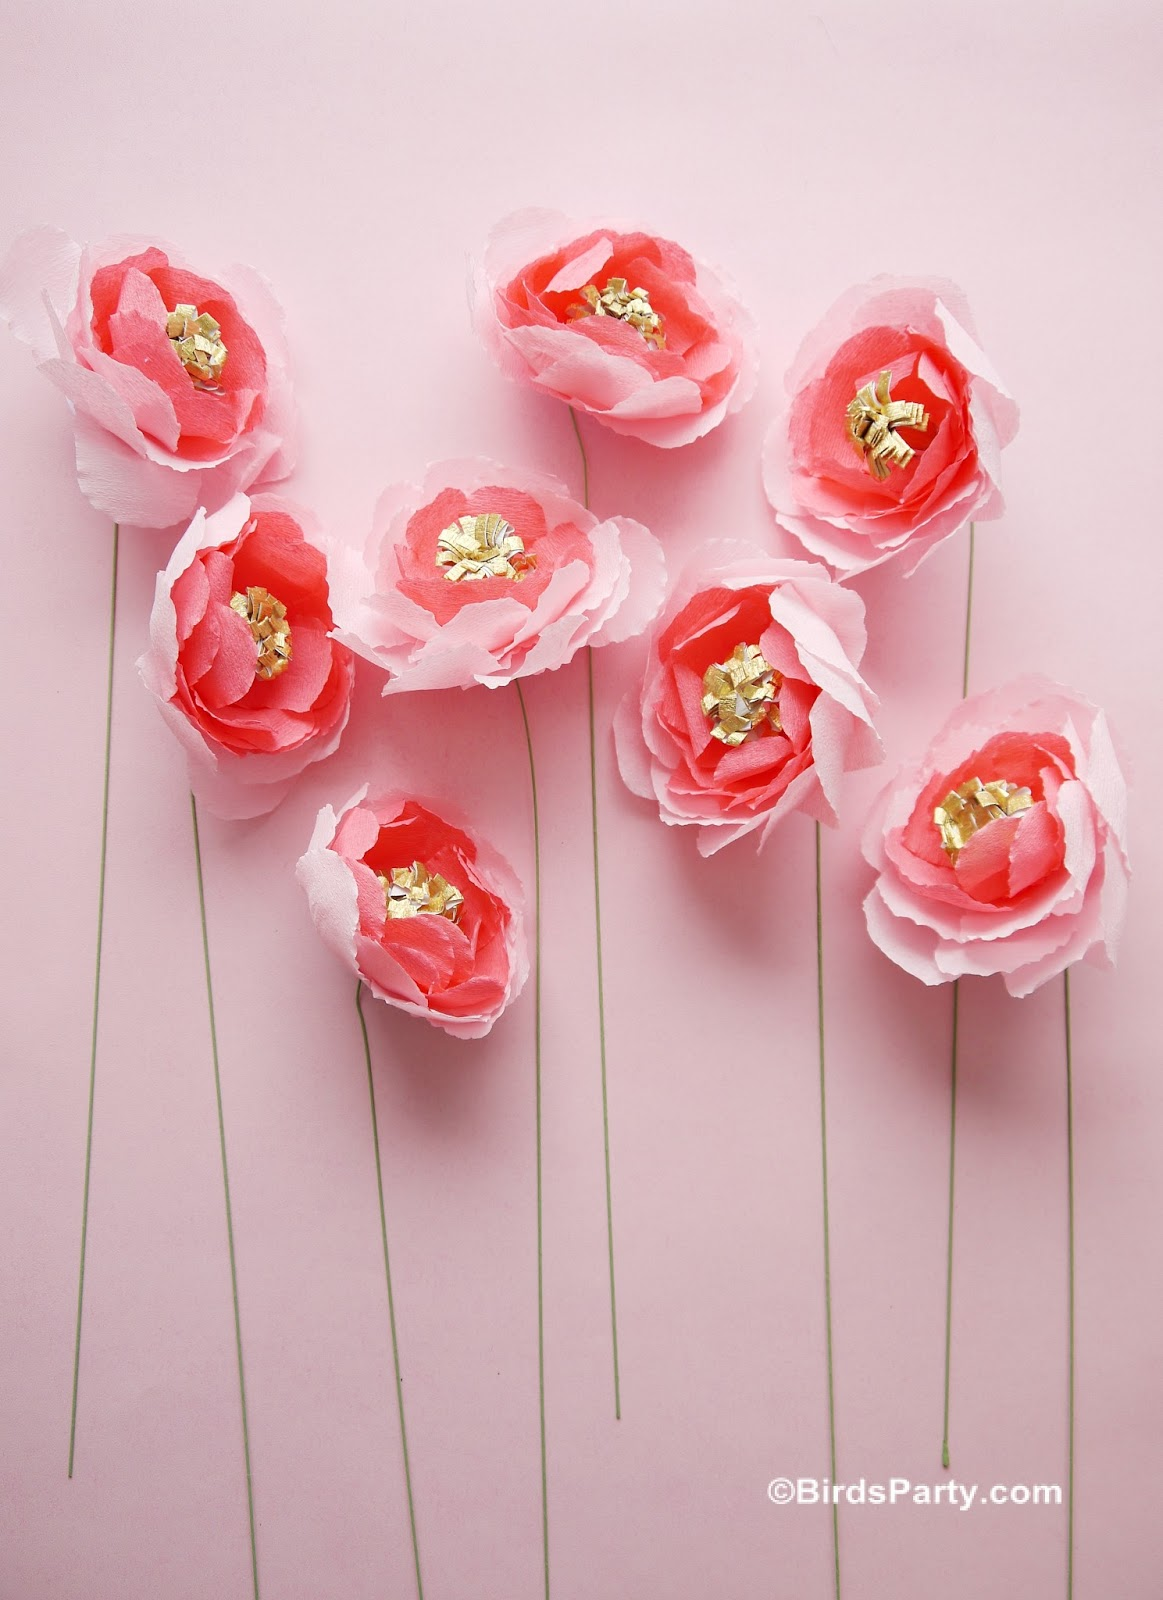 DIY Crepe Paper Flowers Bouquet